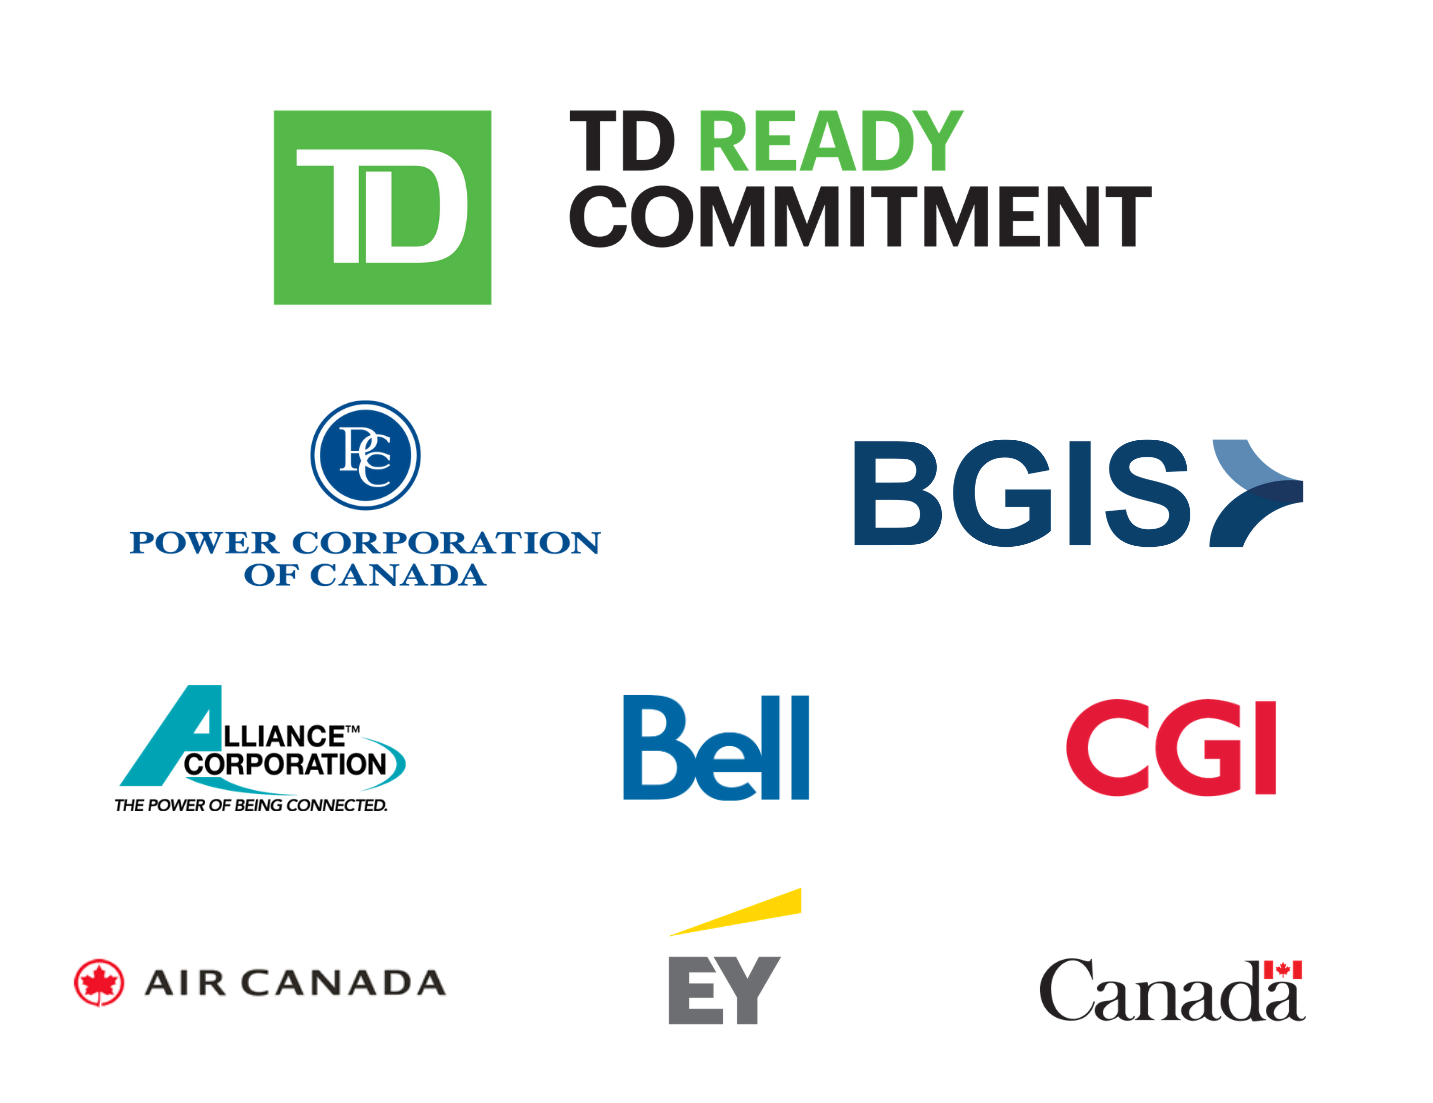 TD Ready Commitment - Power Corporation of Canada - BGIS - Alliance Corporation - Bell - CGI - Air Canada - EY - Global Affairs Canada